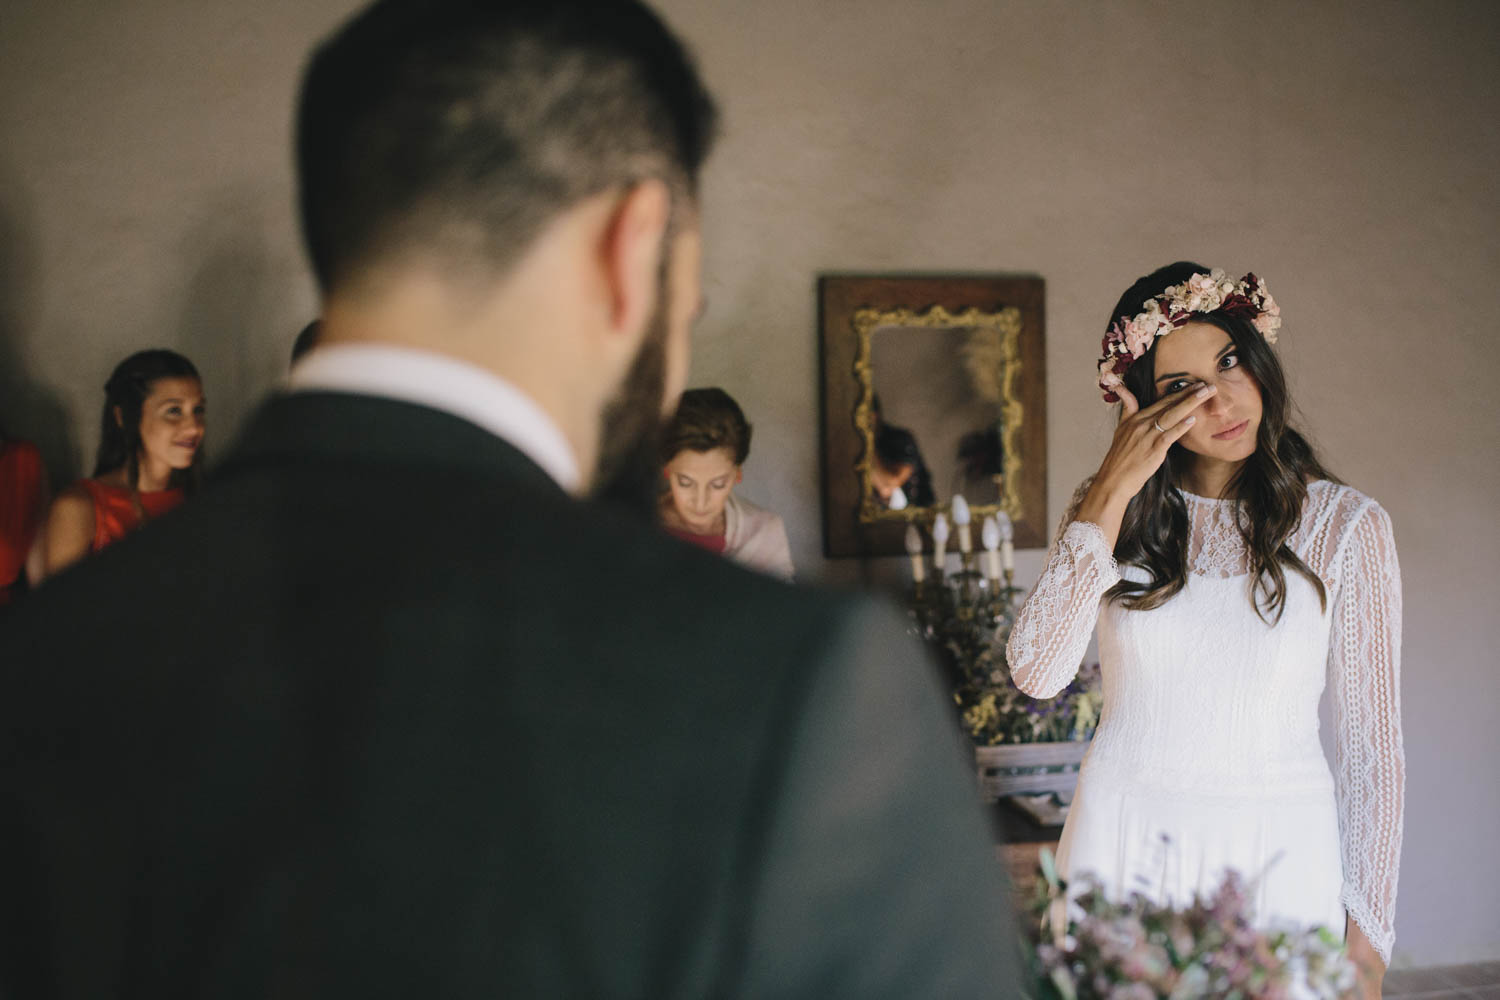 hondo_studio_wedding_photography_maria_ignasi_web-47